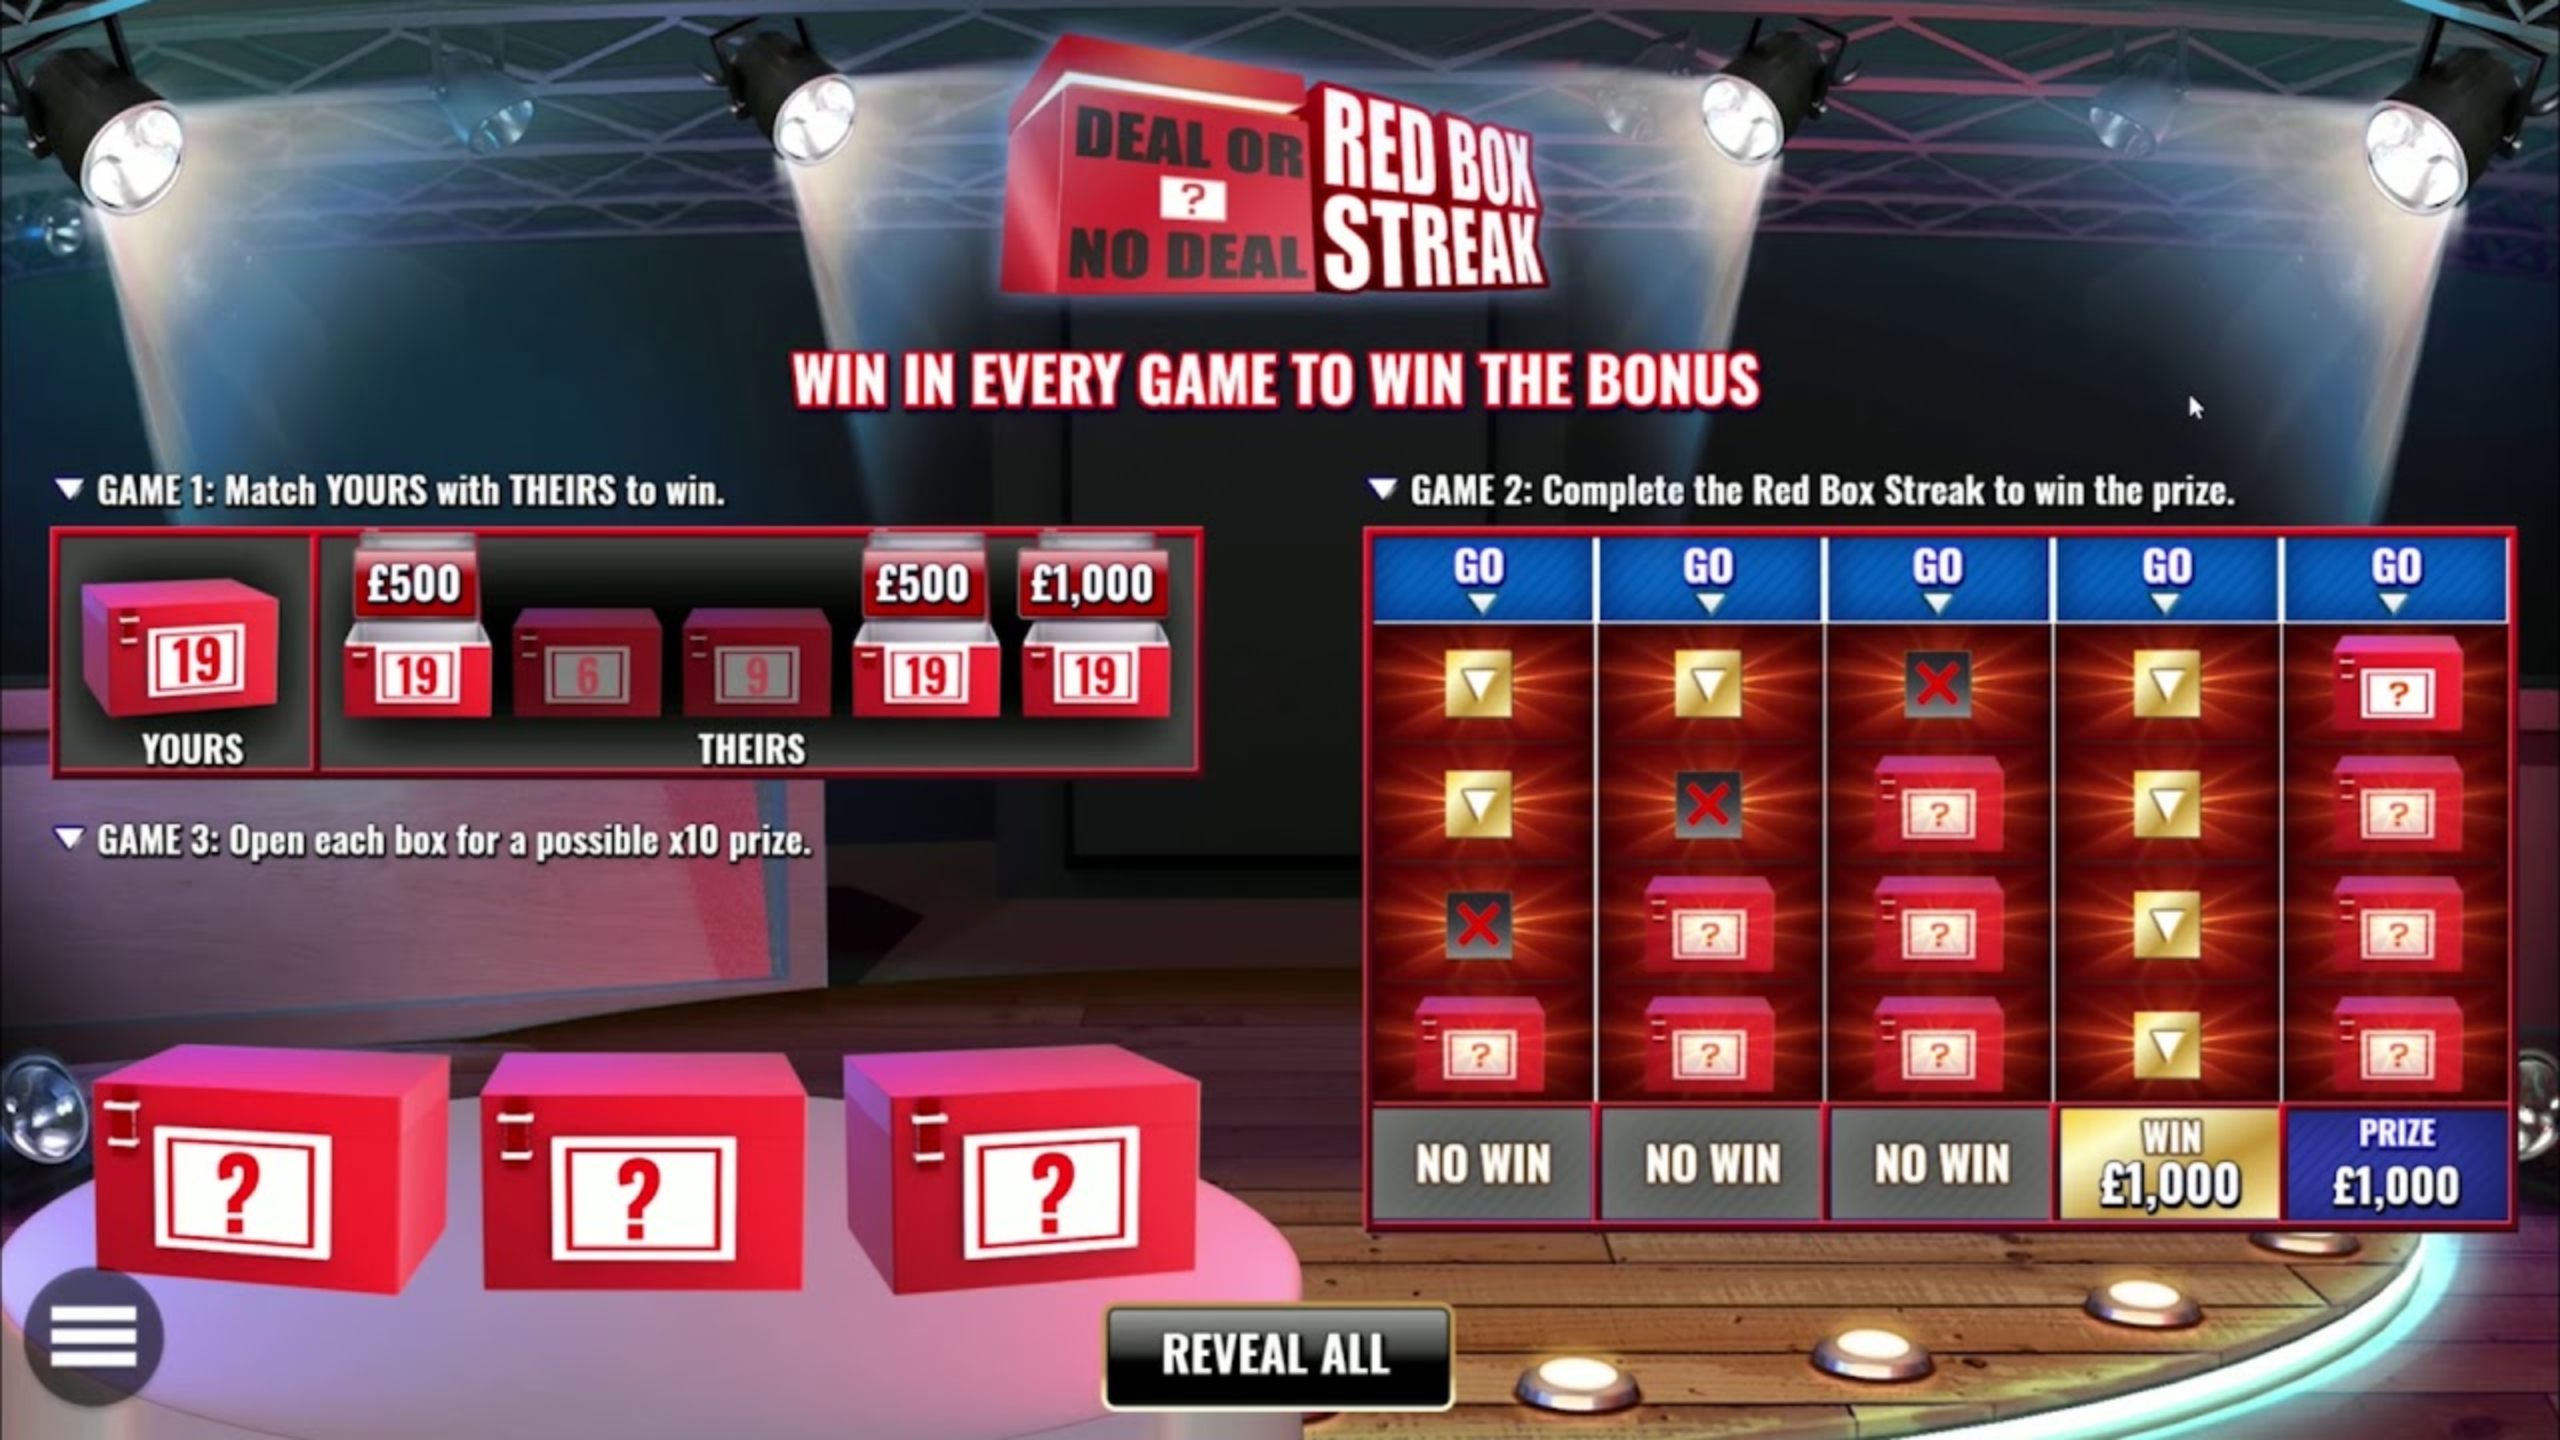 The Deal or No Deal Red Box Streak Online Slot Demo Game by Endemol Games